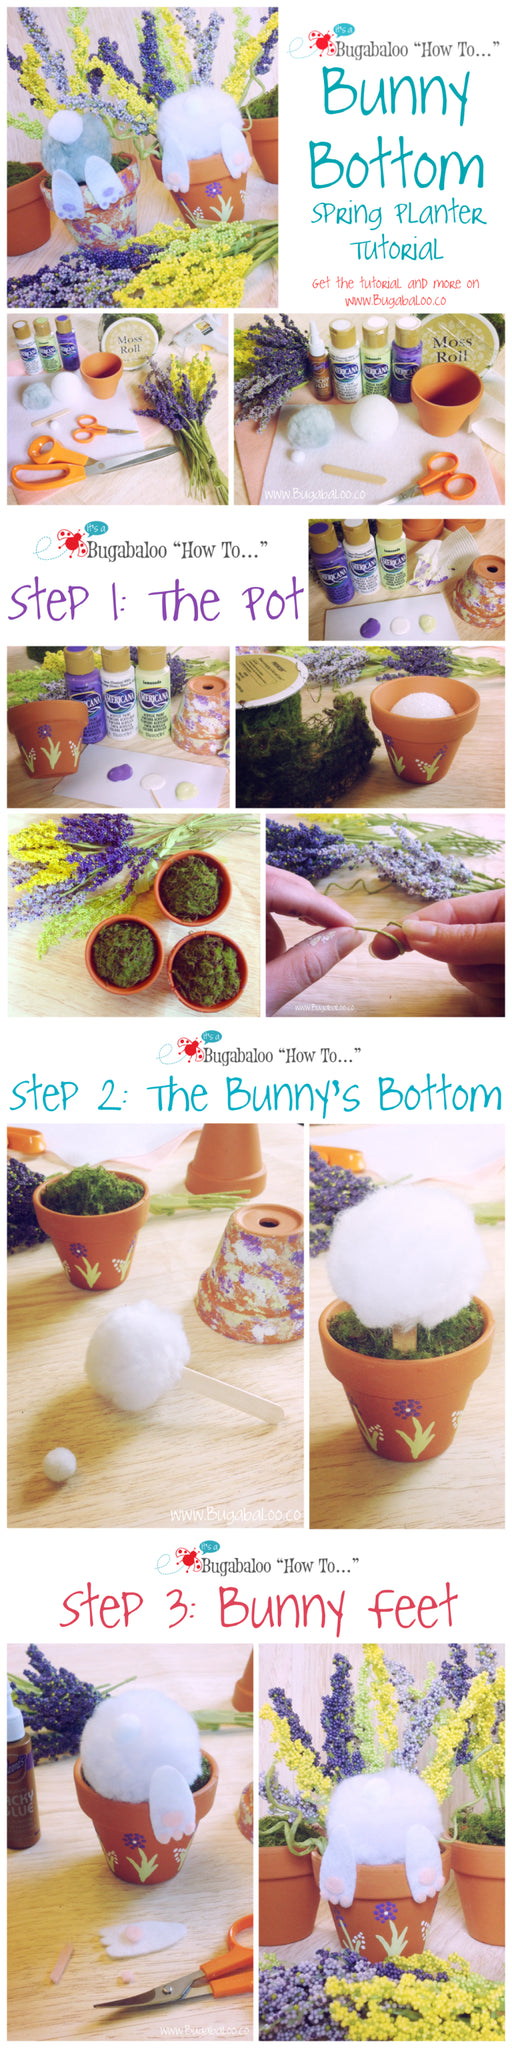 Bugabaloo How To: Bunny Bottom Spring Planter Tutorial